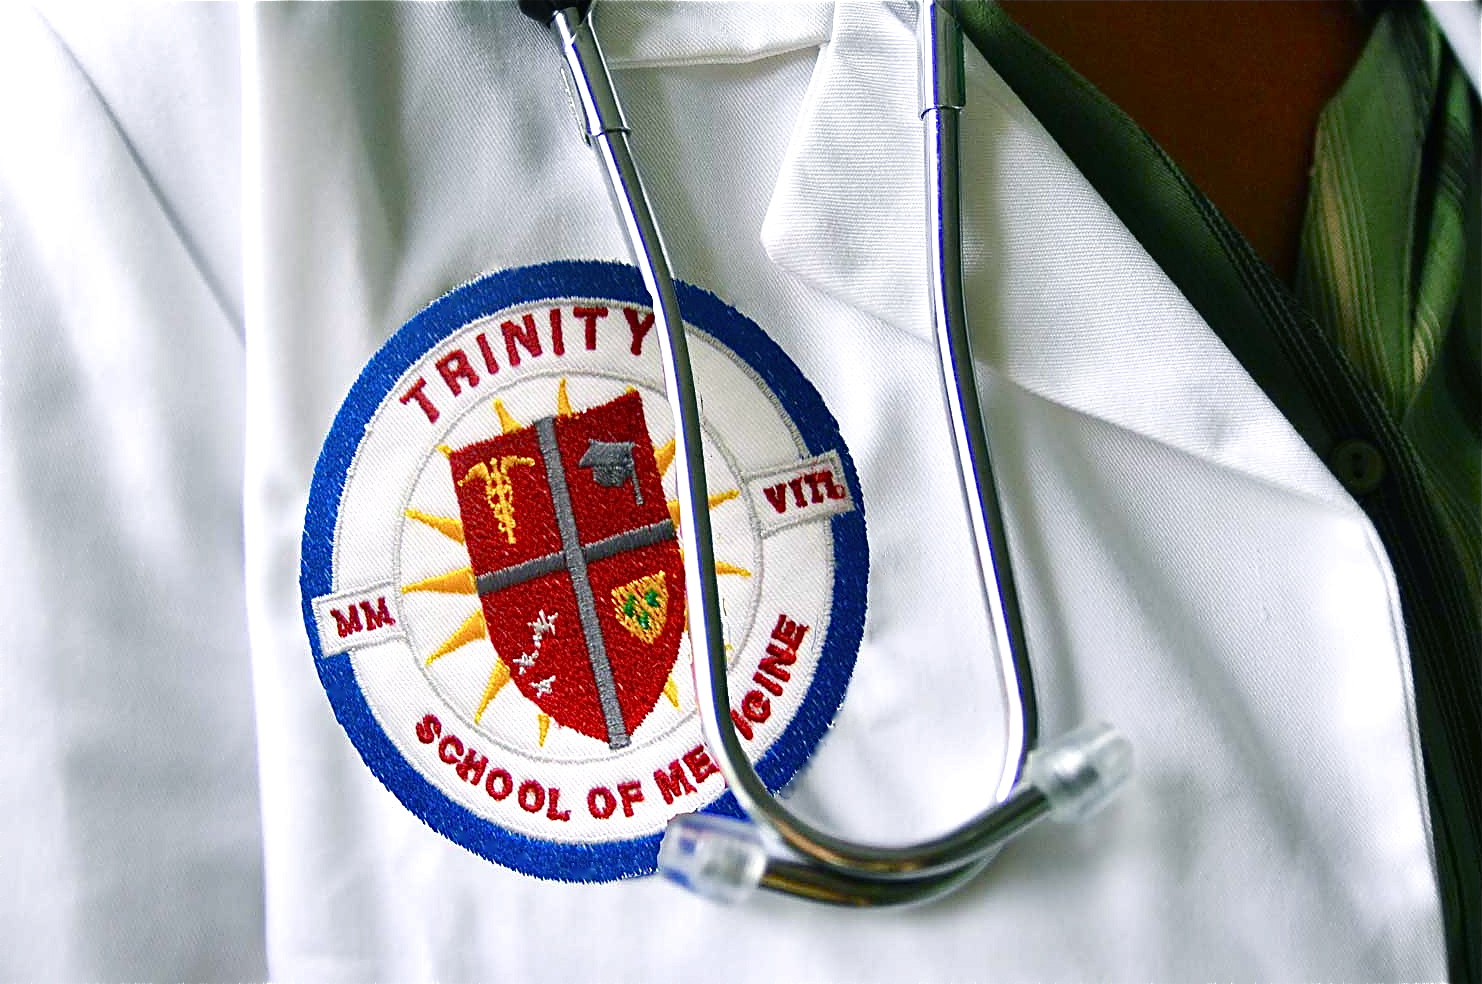 Trinity School of Medicine 2012 Residency Match Results